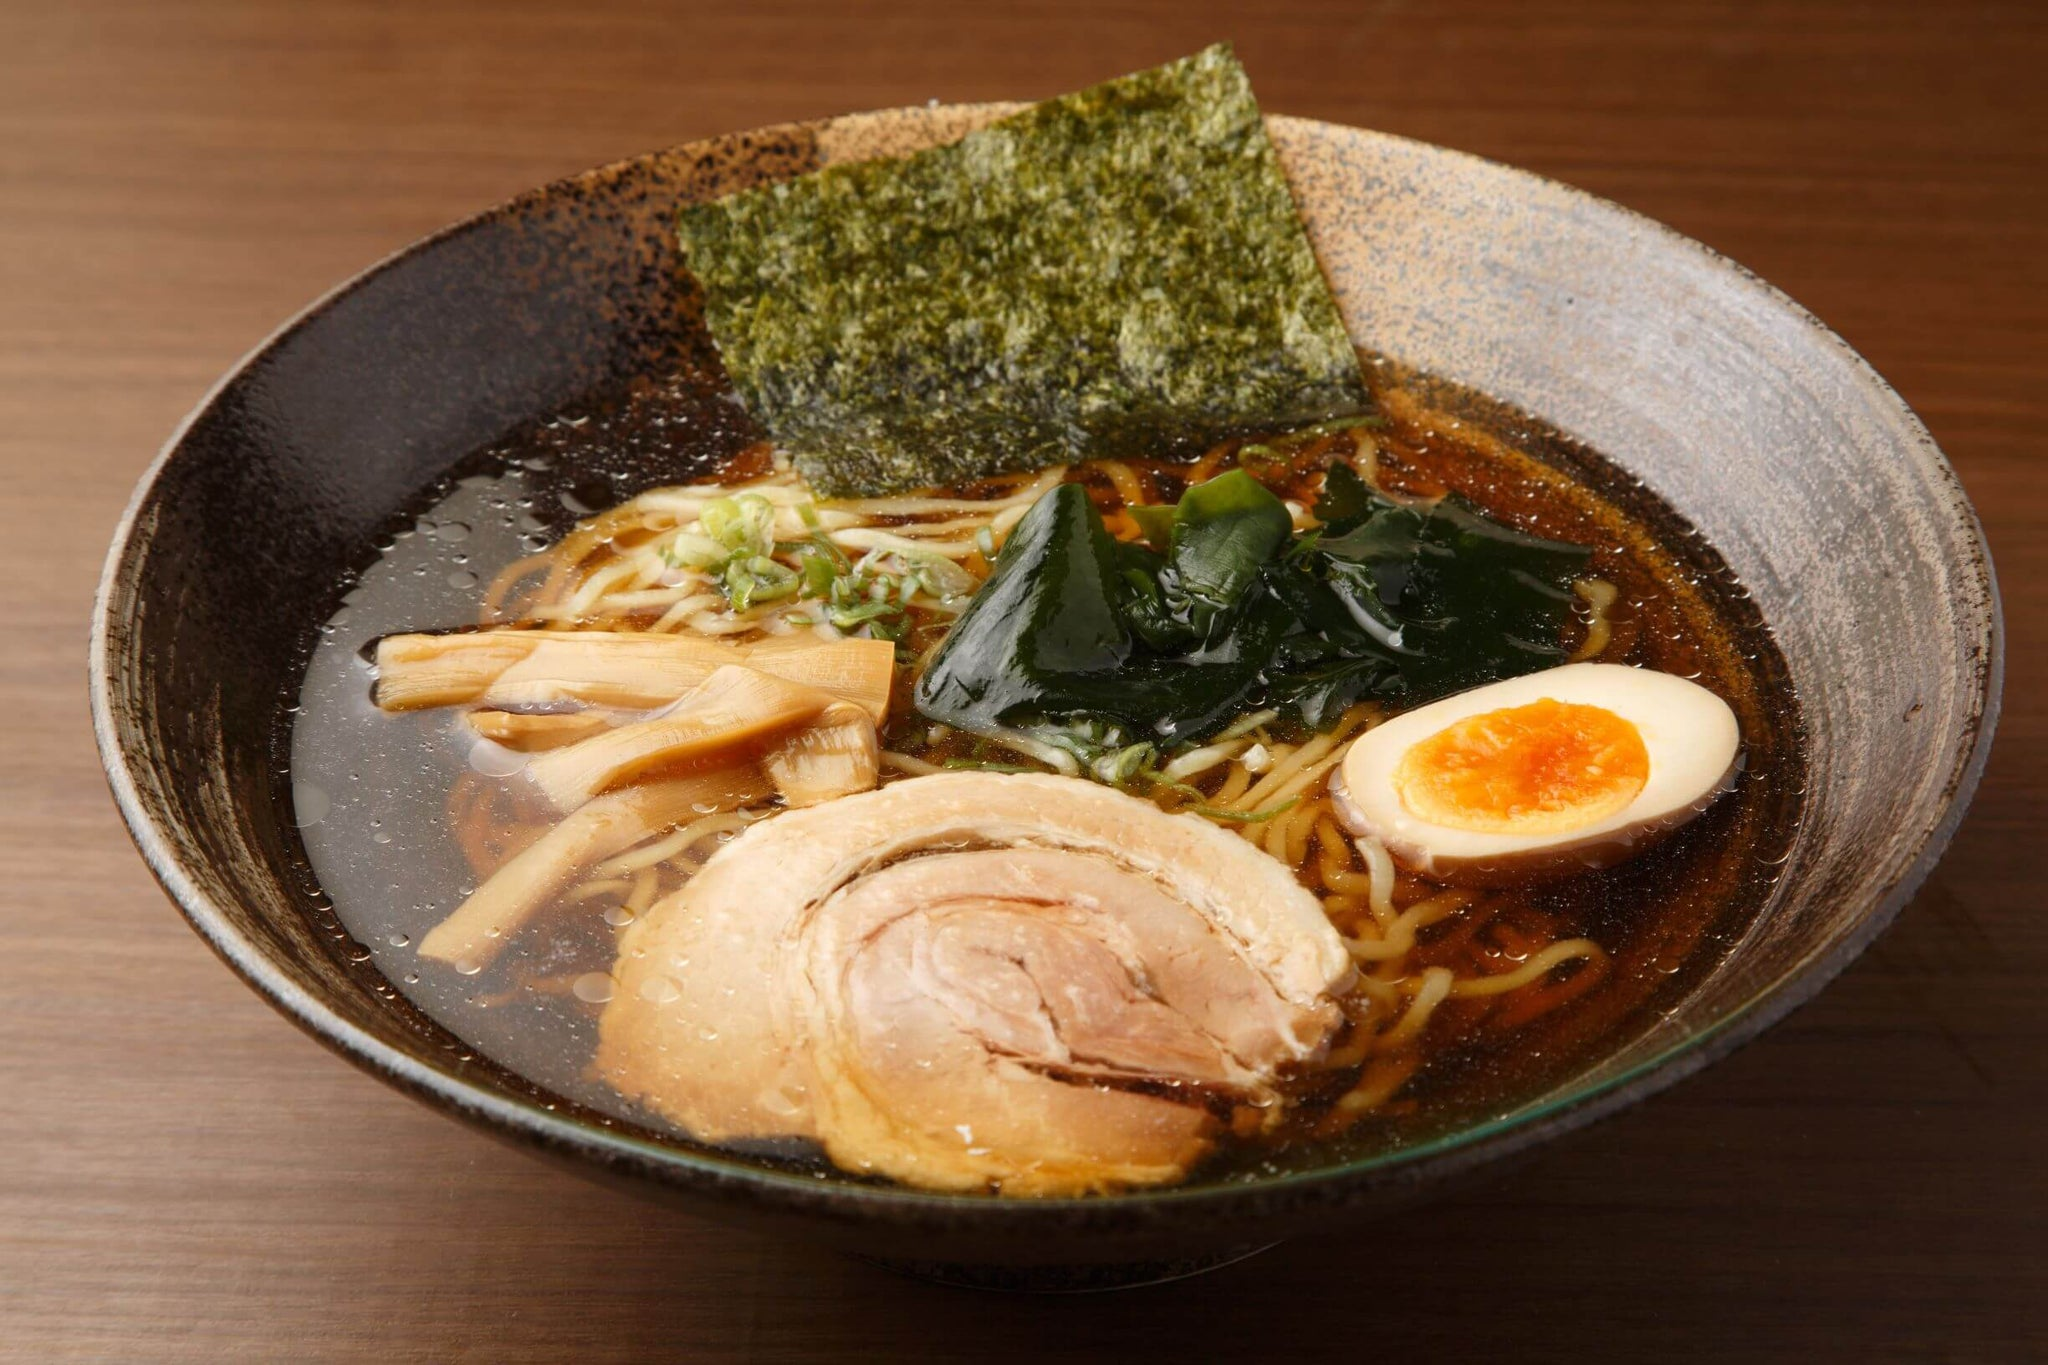 Tokyo ramen, a type of shoyu ramen topped with a boiled egg, seaweed, roasted pork and bamboo